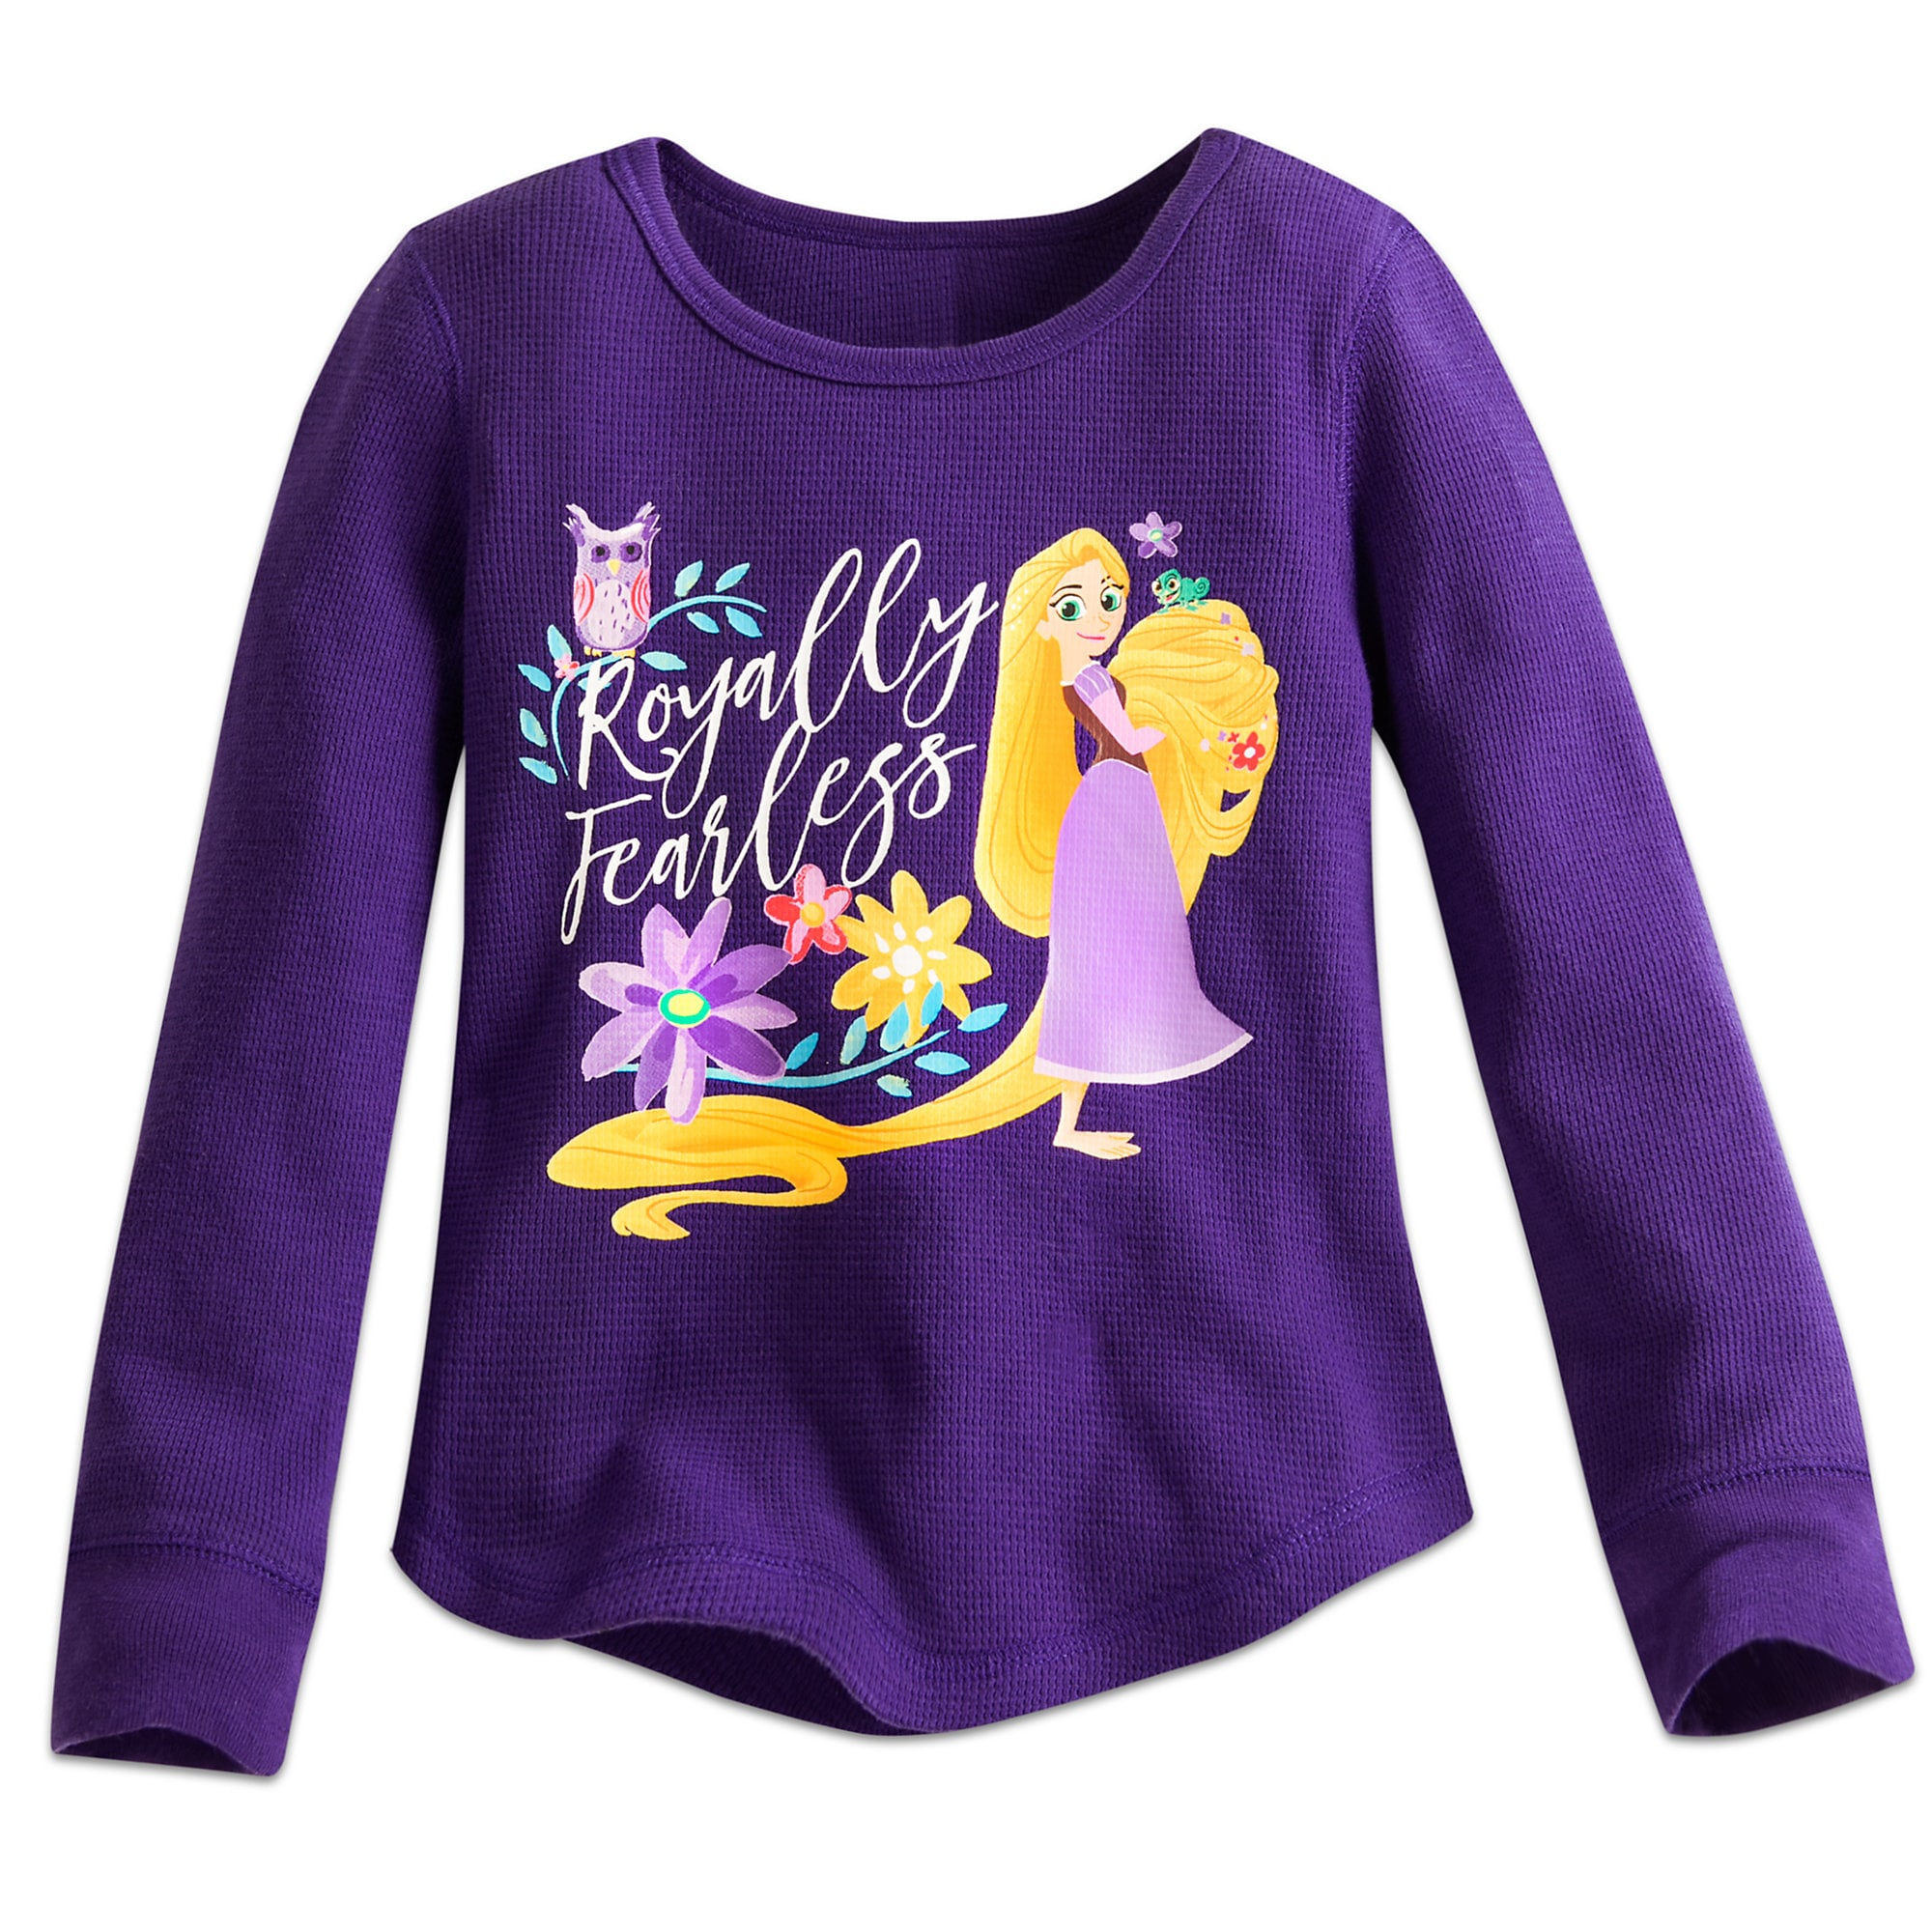 Rapunzel Thermal Tee for Girls - Tangled: The Series